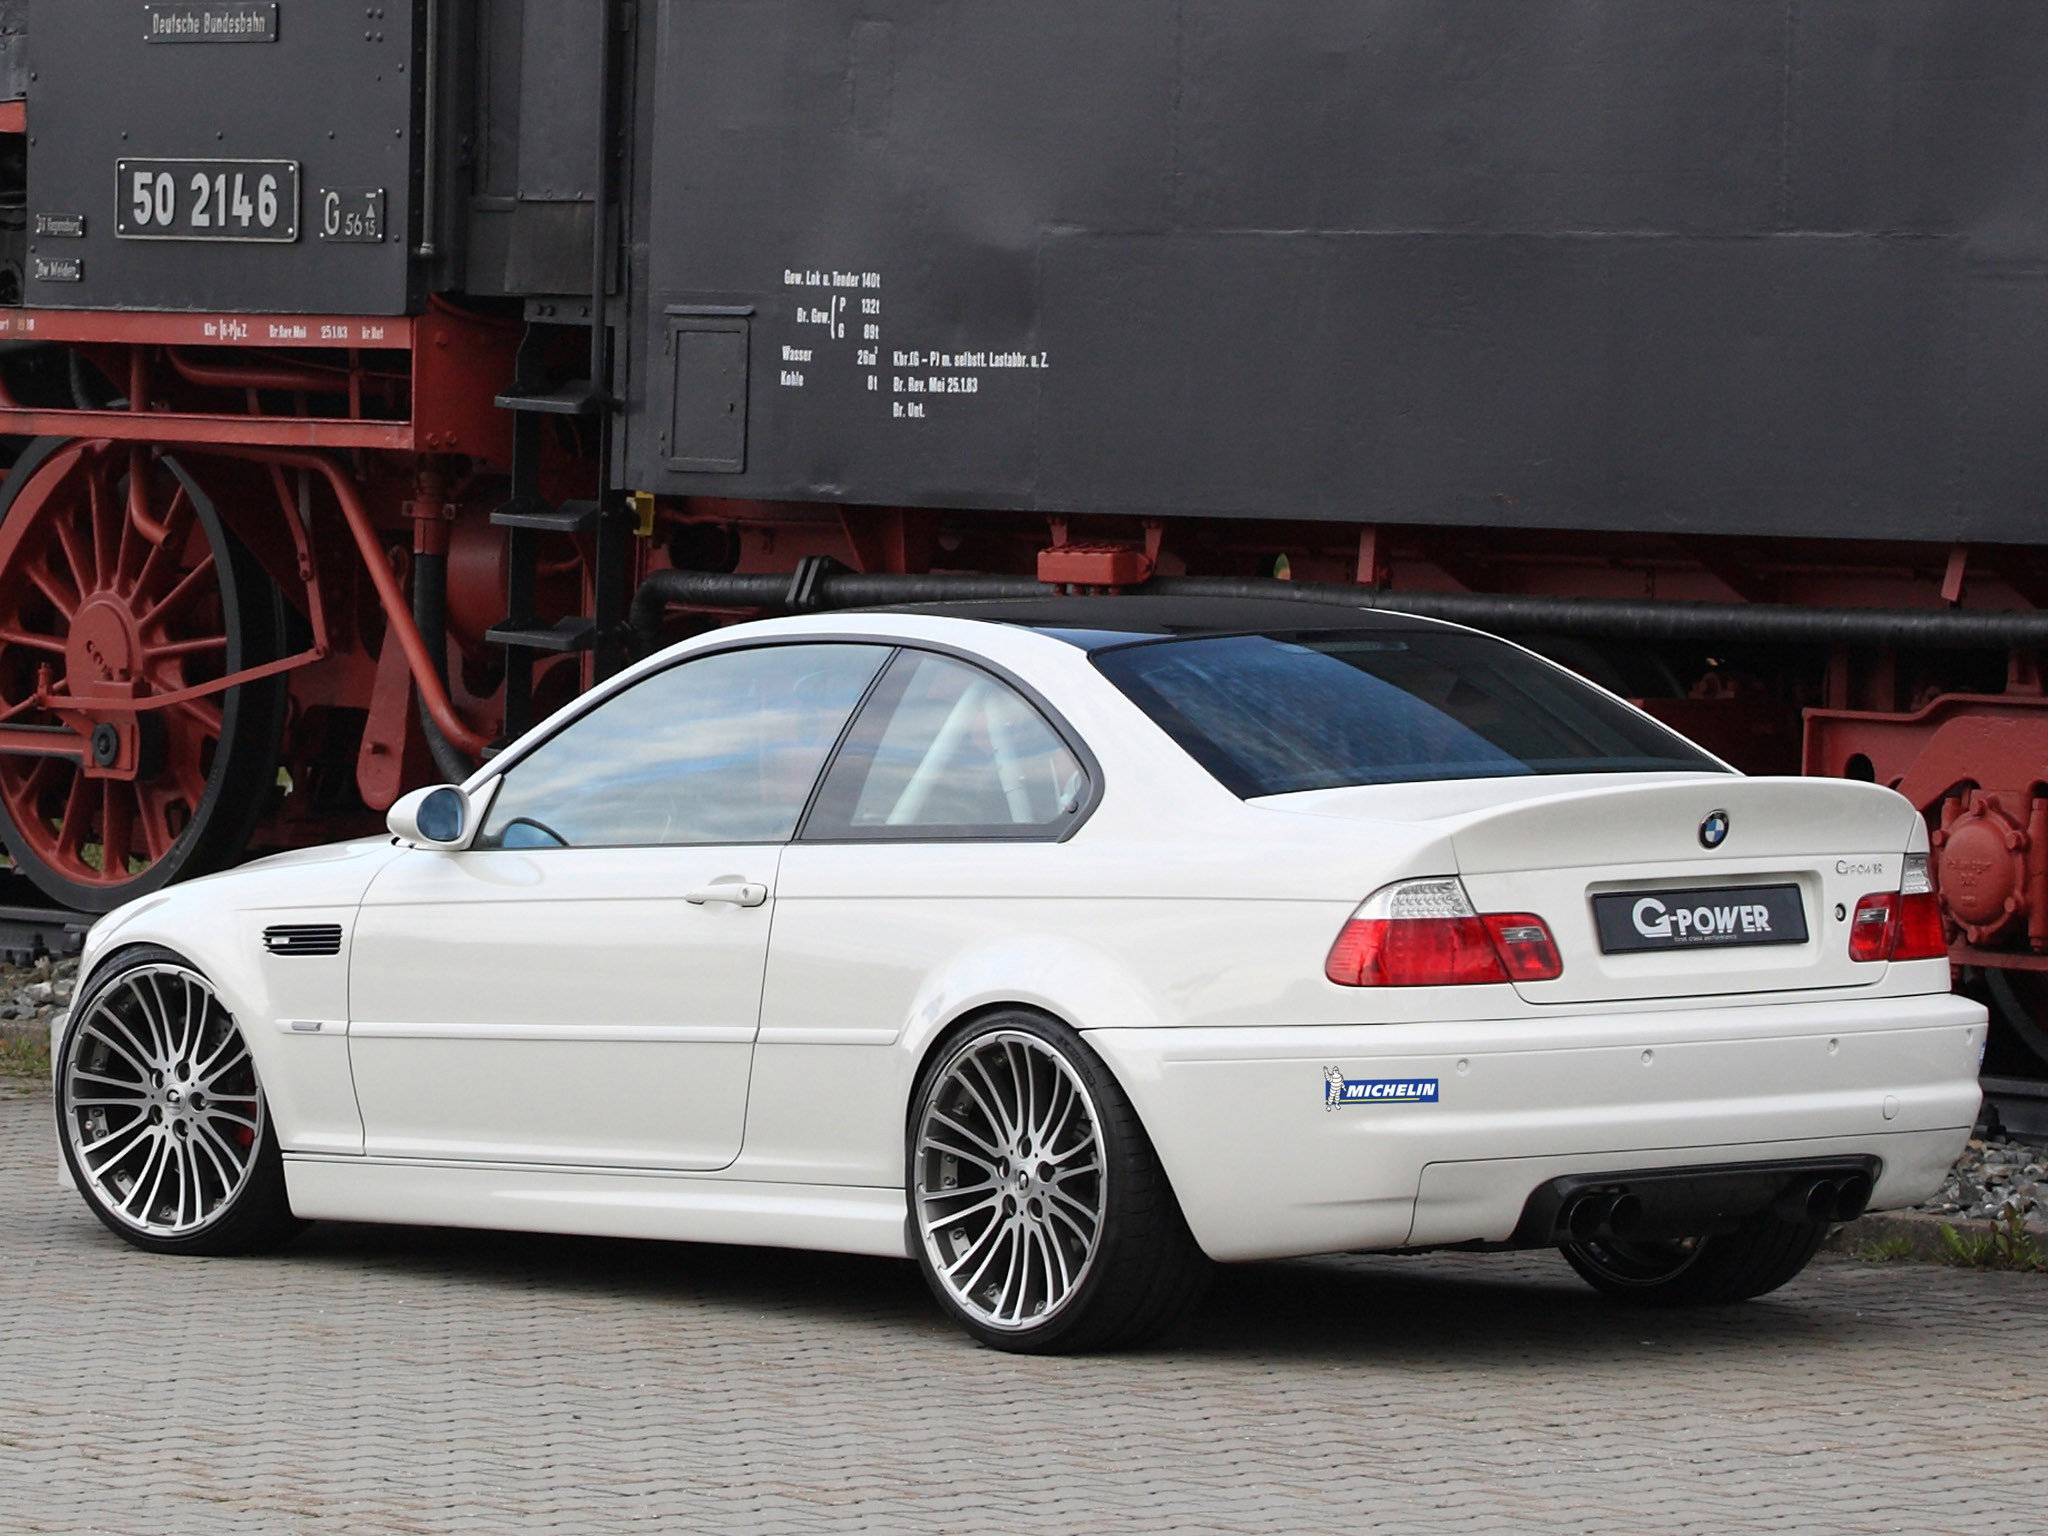 2012 G-Power - Bmw M3 Coupe E46